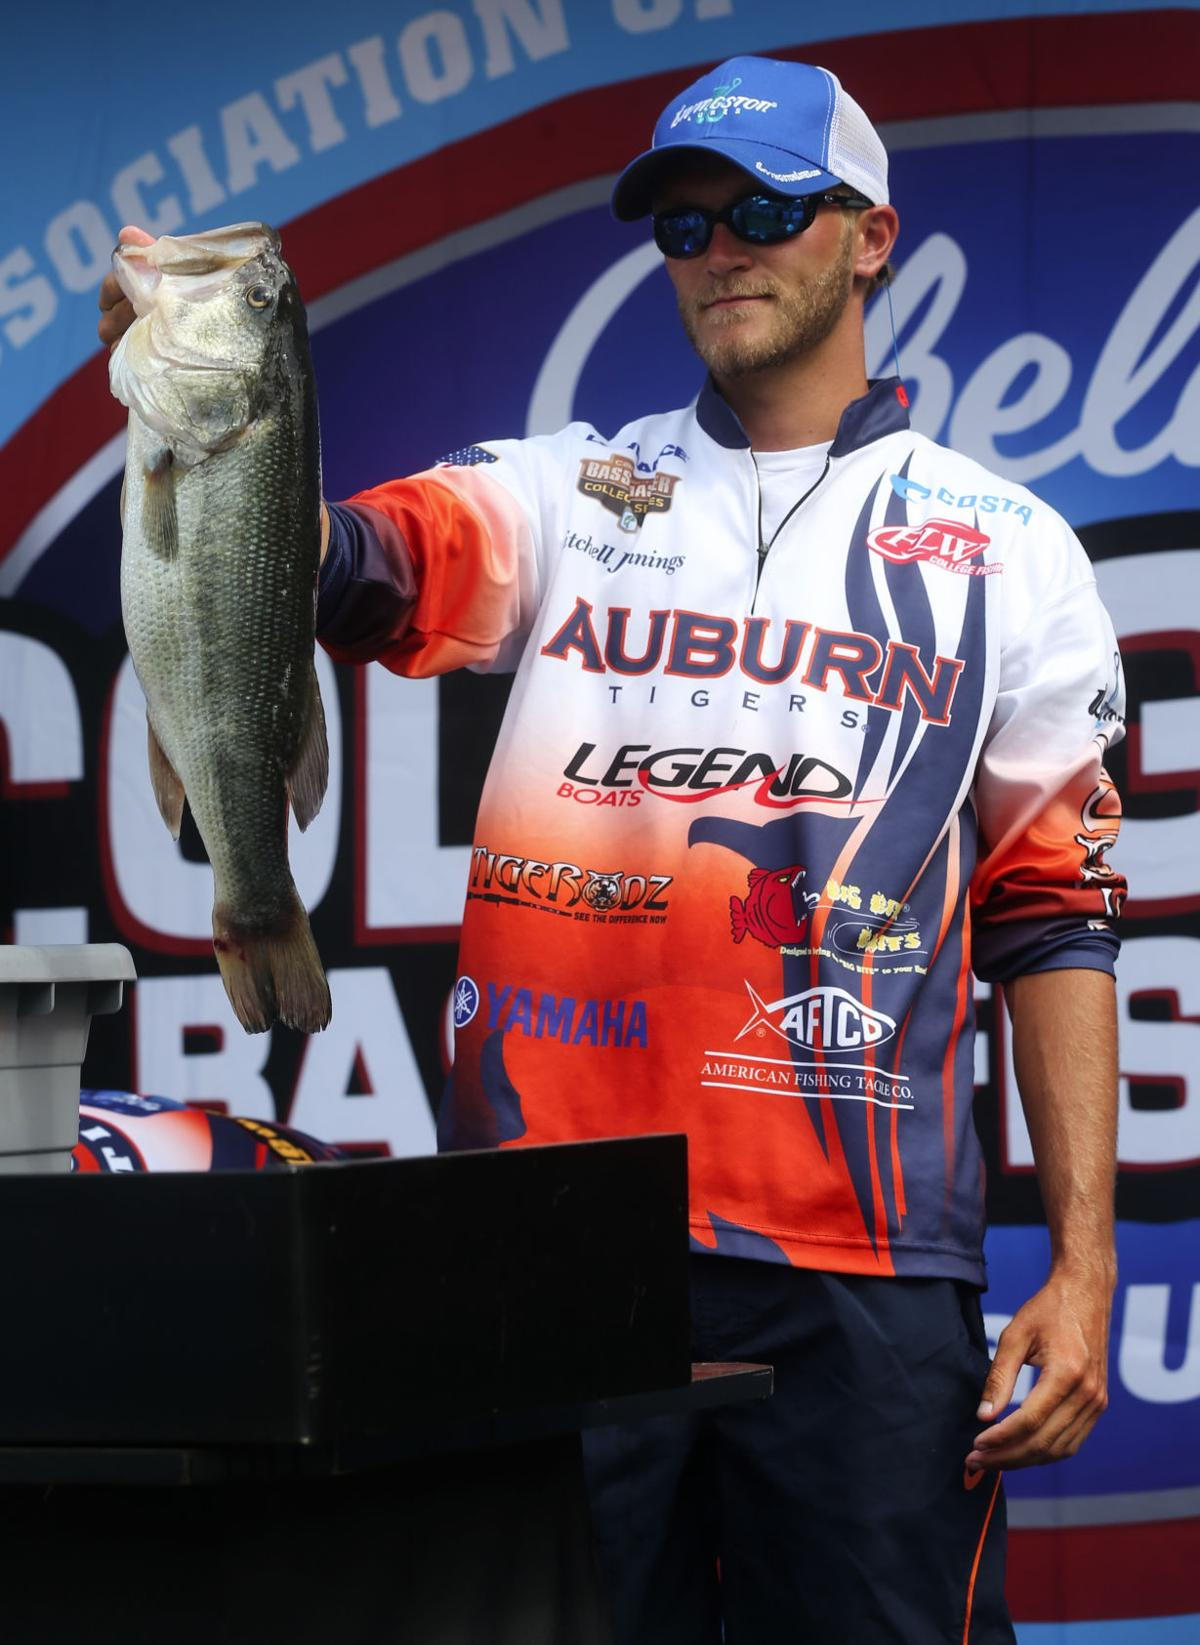 Boatus collegiate bass fishing championship day 2 for College bass fishing